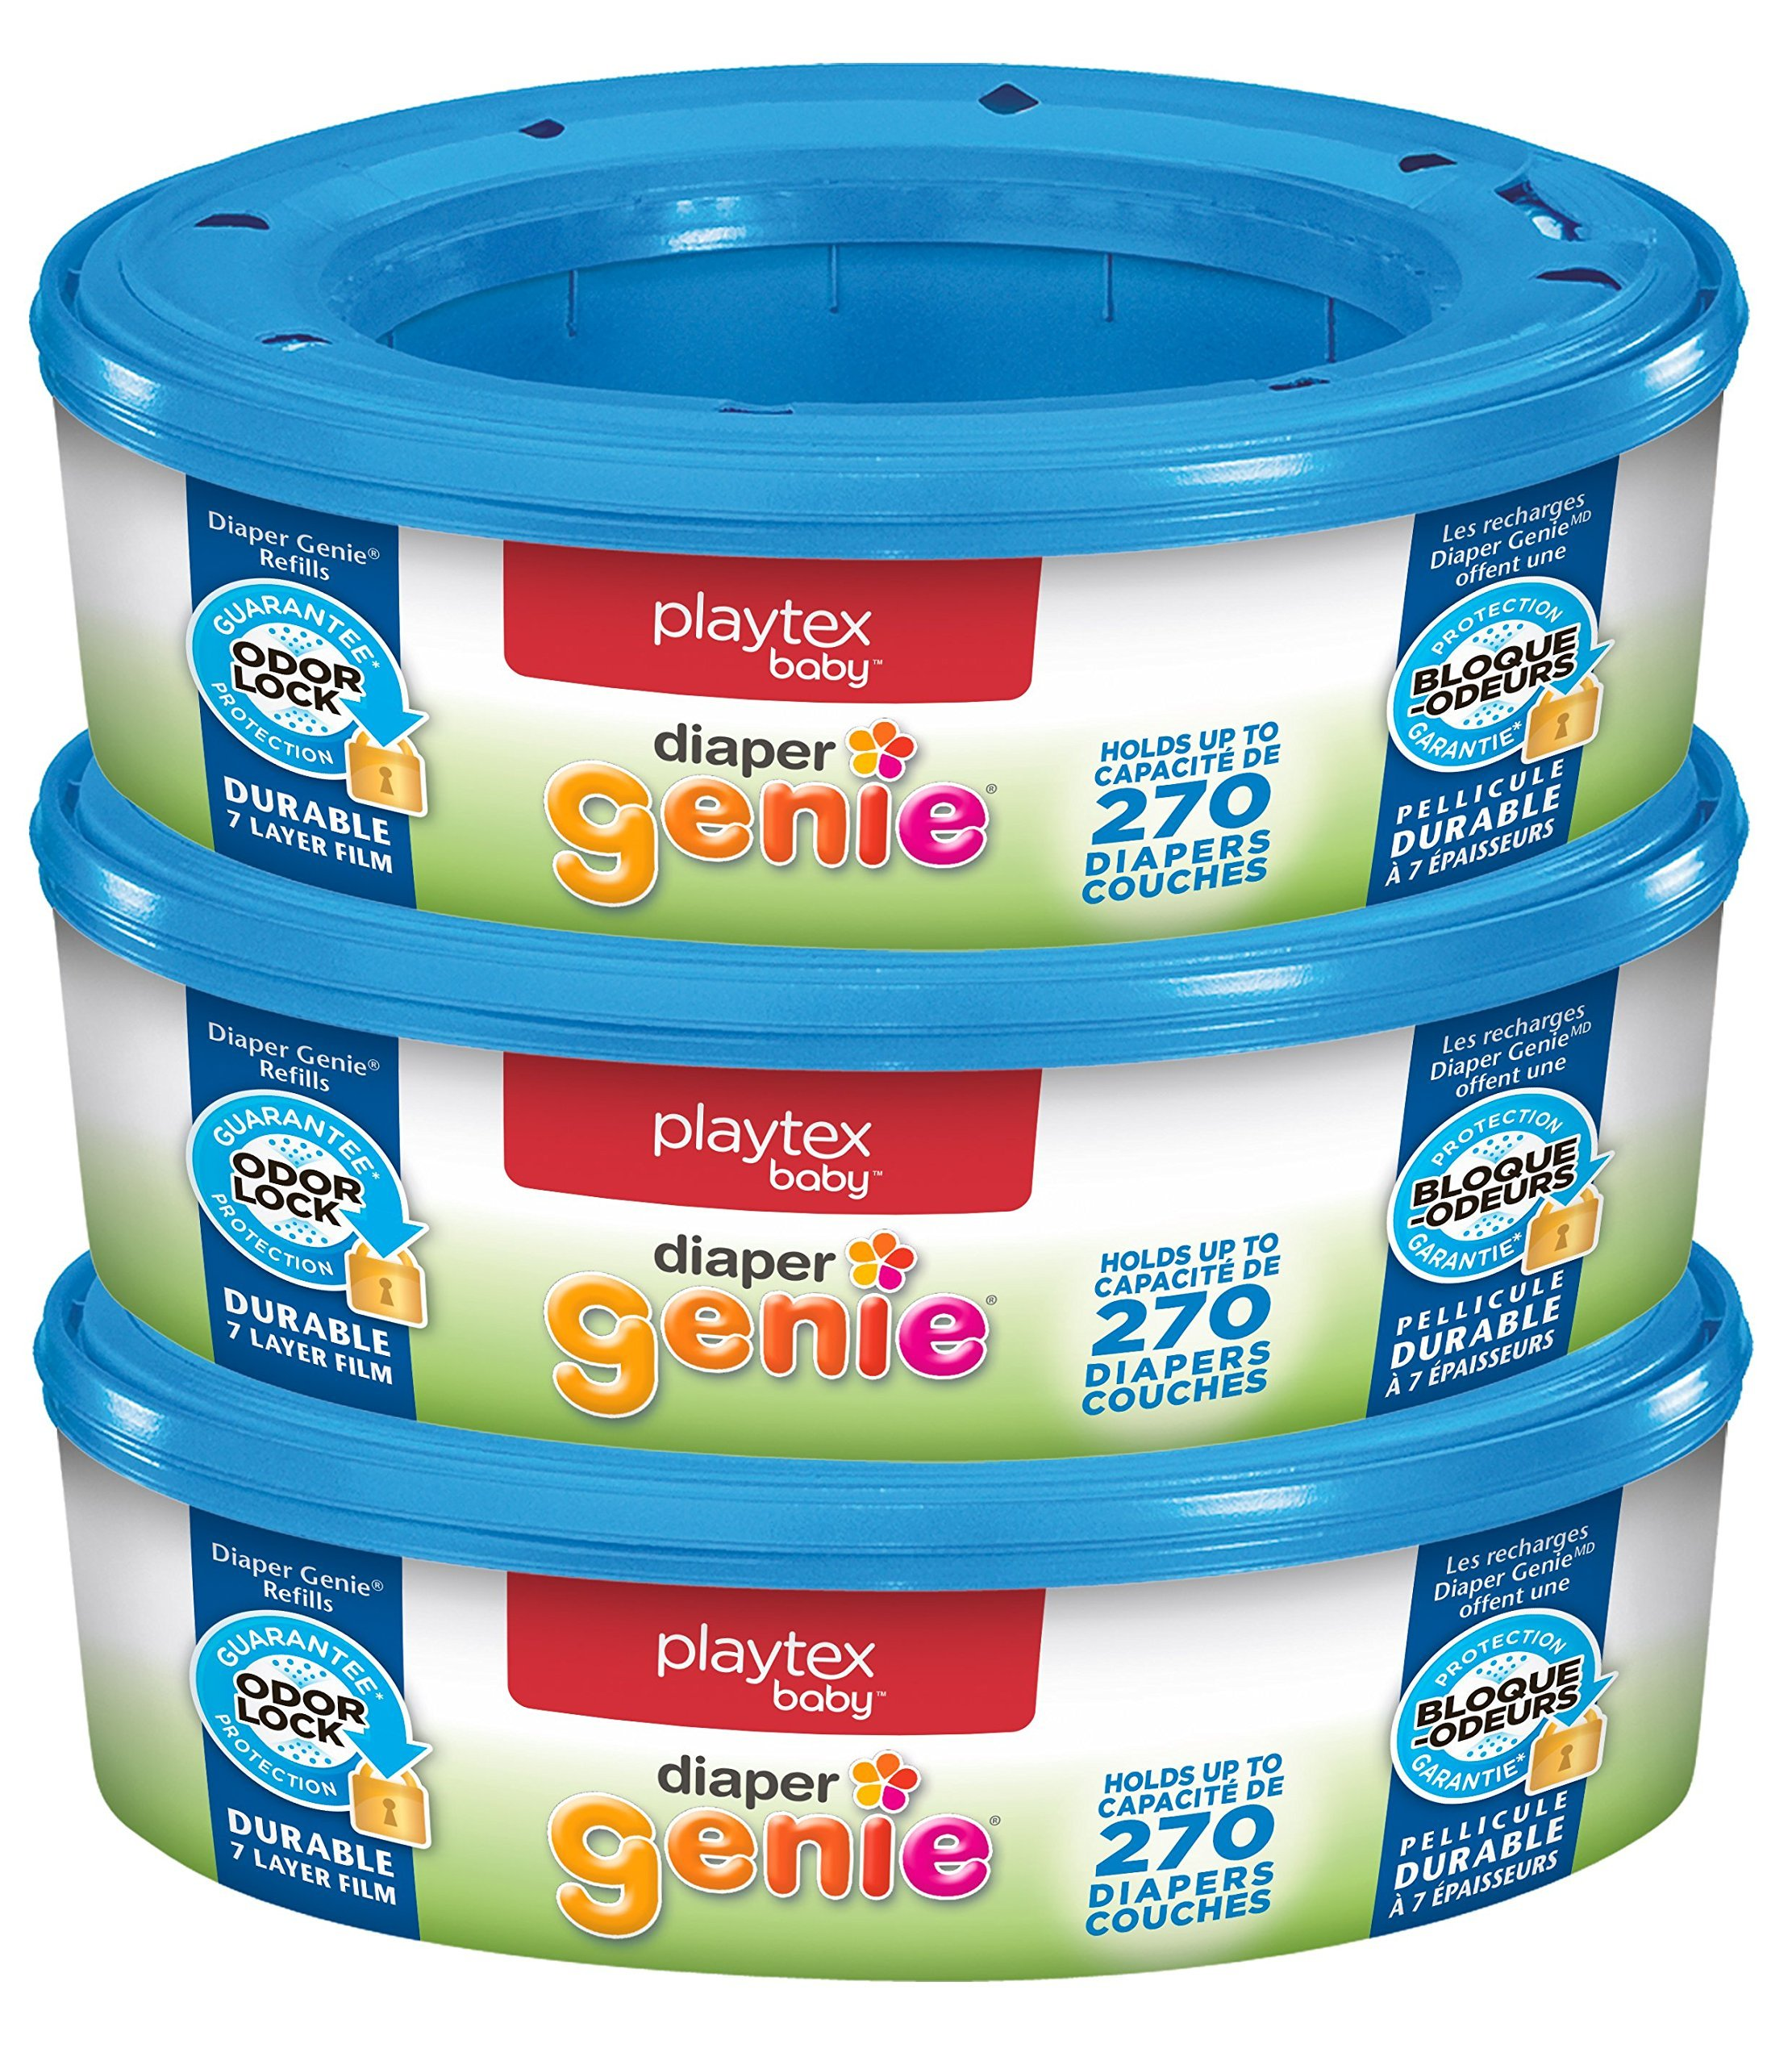 Playtex Diaper Genie Refills for Diaper Genie Diaper Pails - 270 Count (Pack of 3) by Playtex